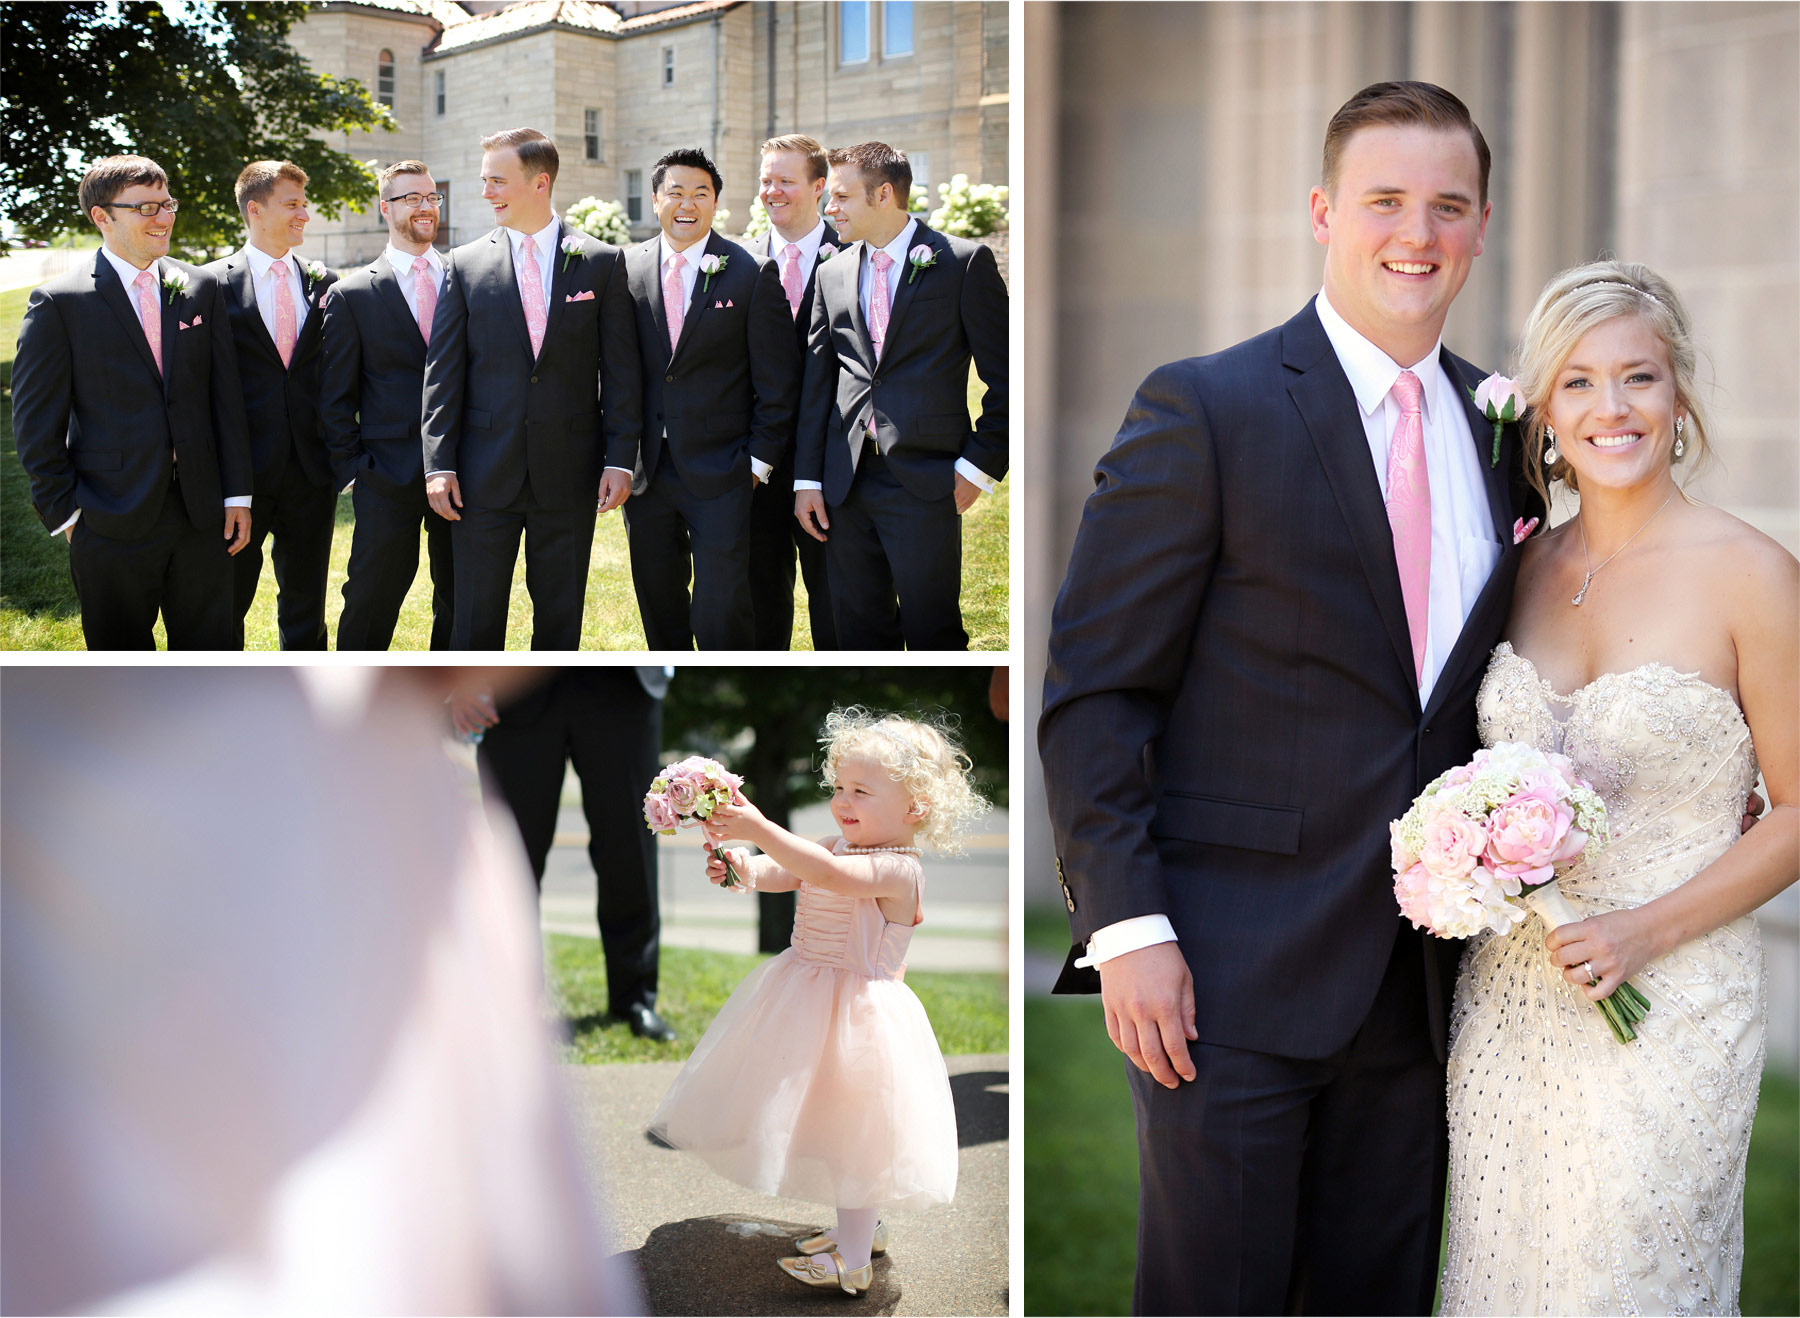 07-Duluth-Minnesota-Wedding-Photographer-by-Andrew-Vick-Photography-Summer-Cathedral-of-Our-Lady-of-the-Rosary-Church--Courtyard-Bride-Groom-Groomsmen-Flower-Girl-Lindsey-and-Adam.jpg